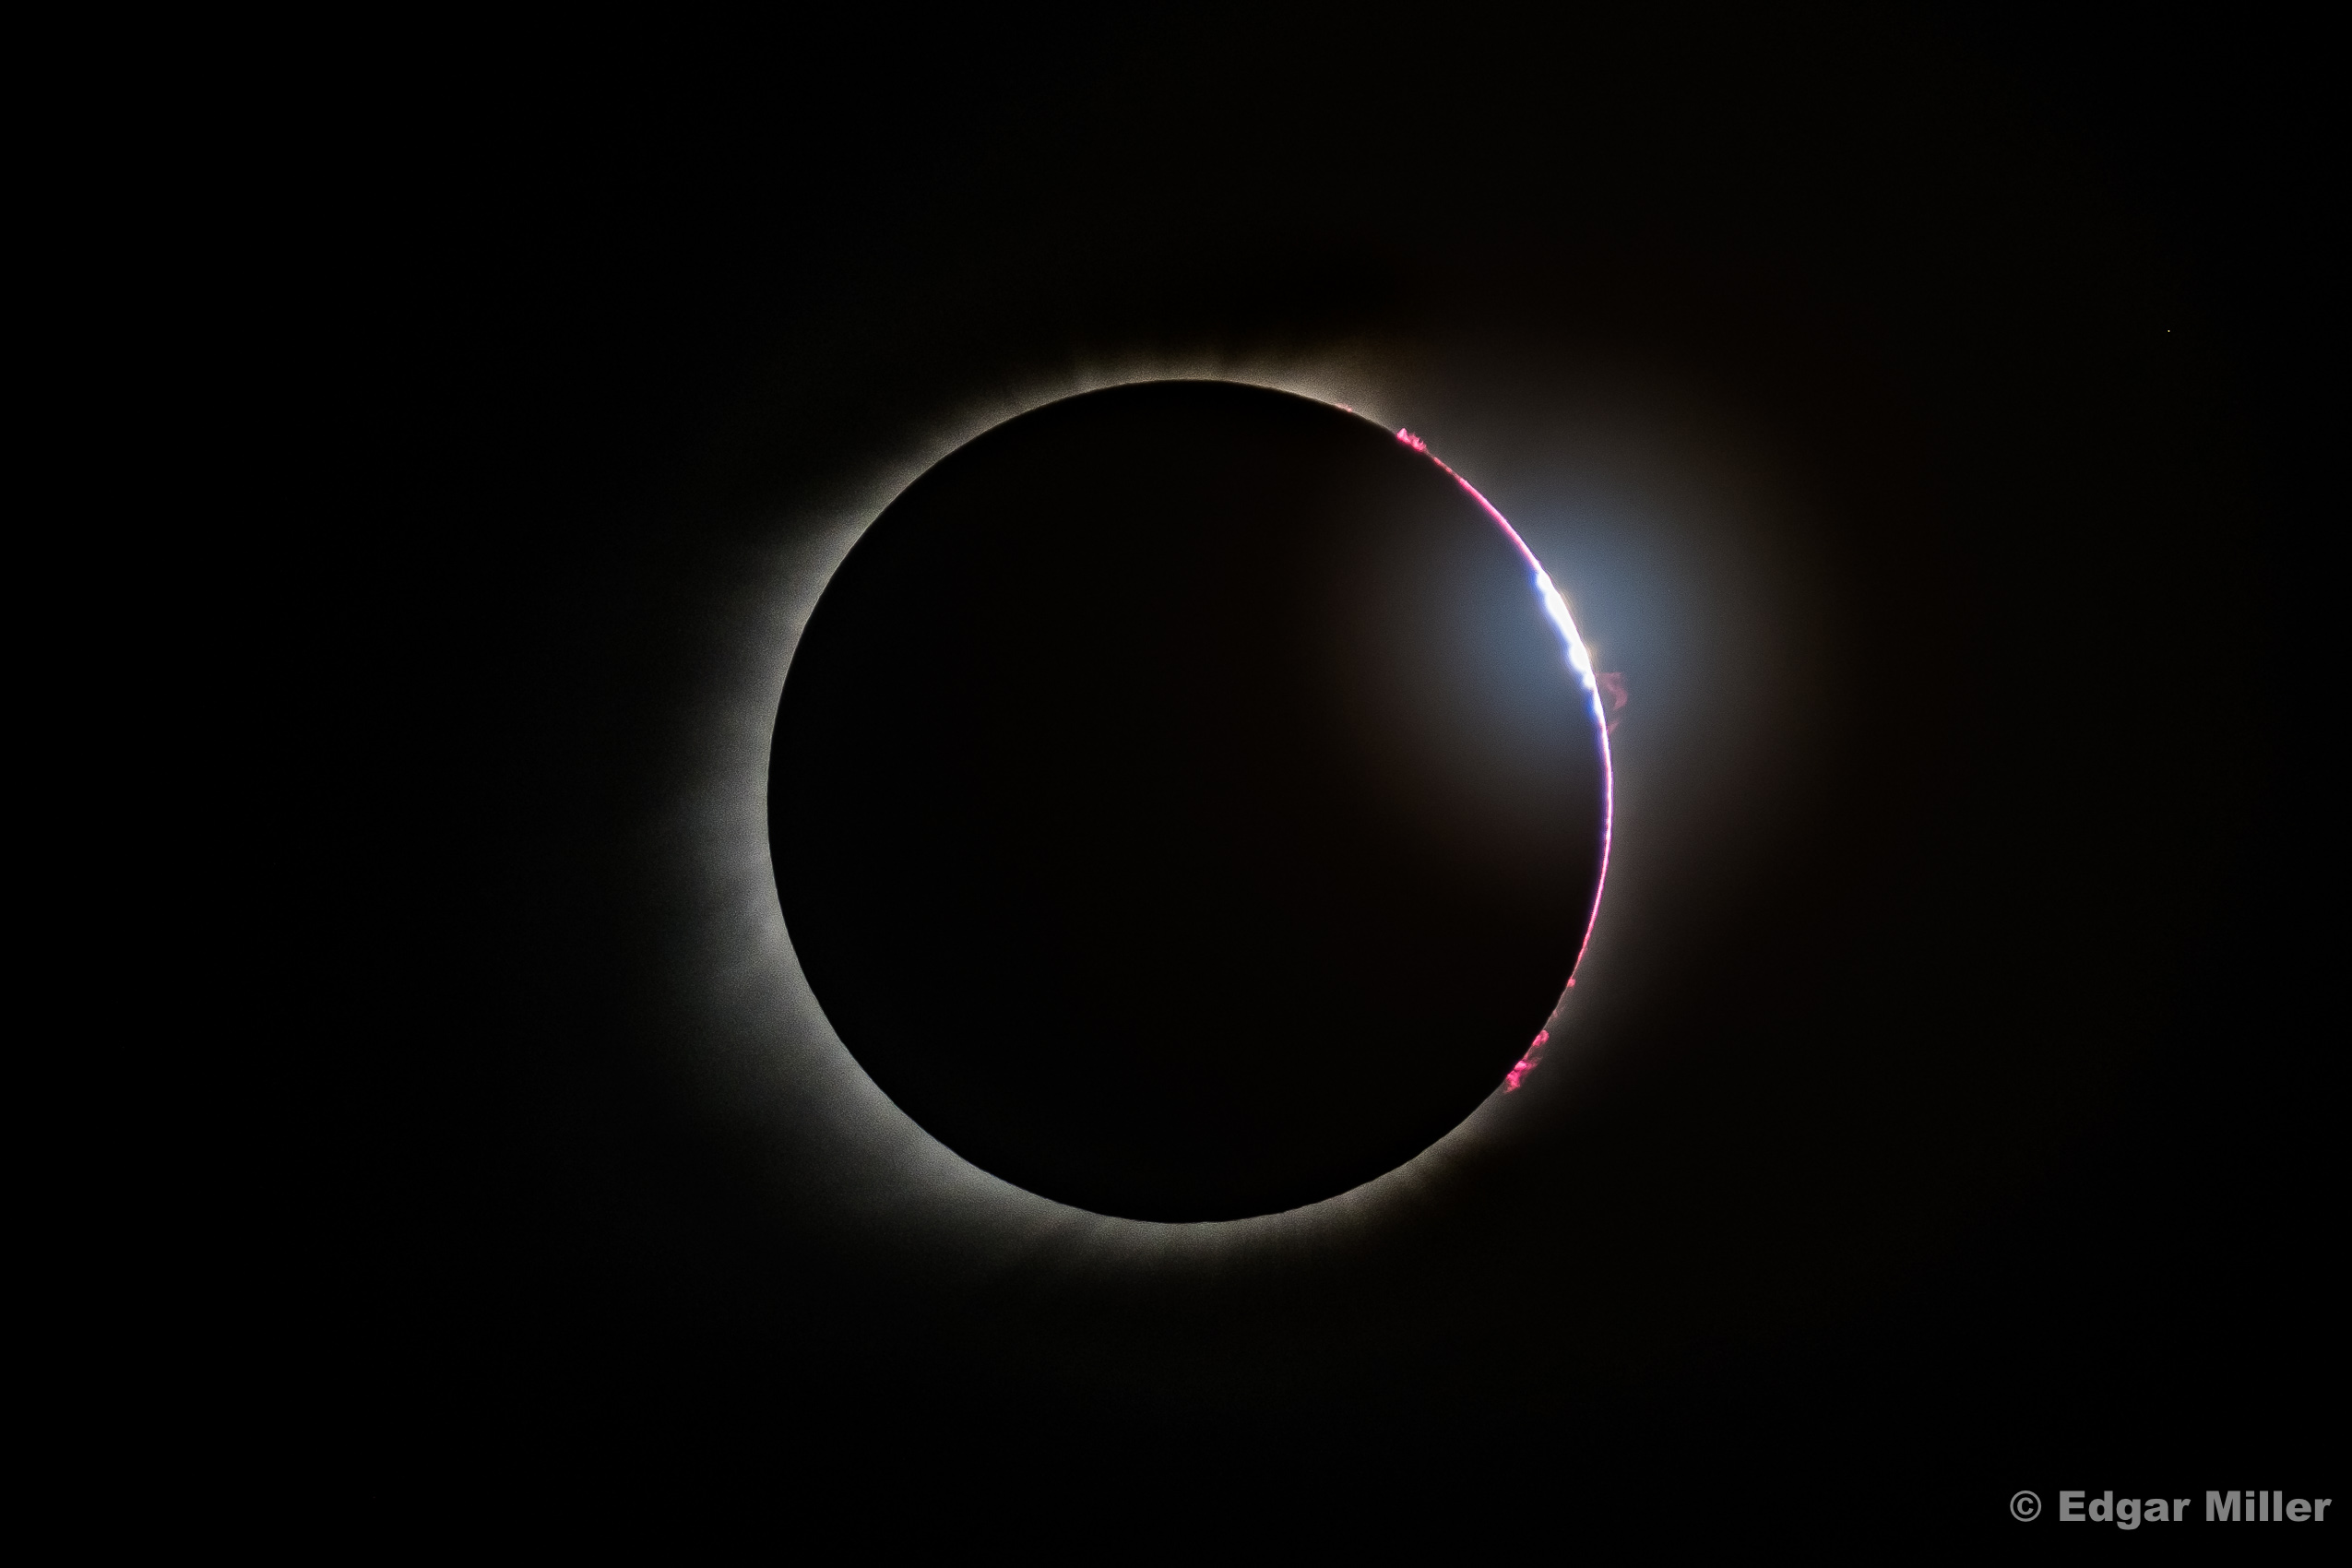 Third Contact, Solar Eclipse 2017